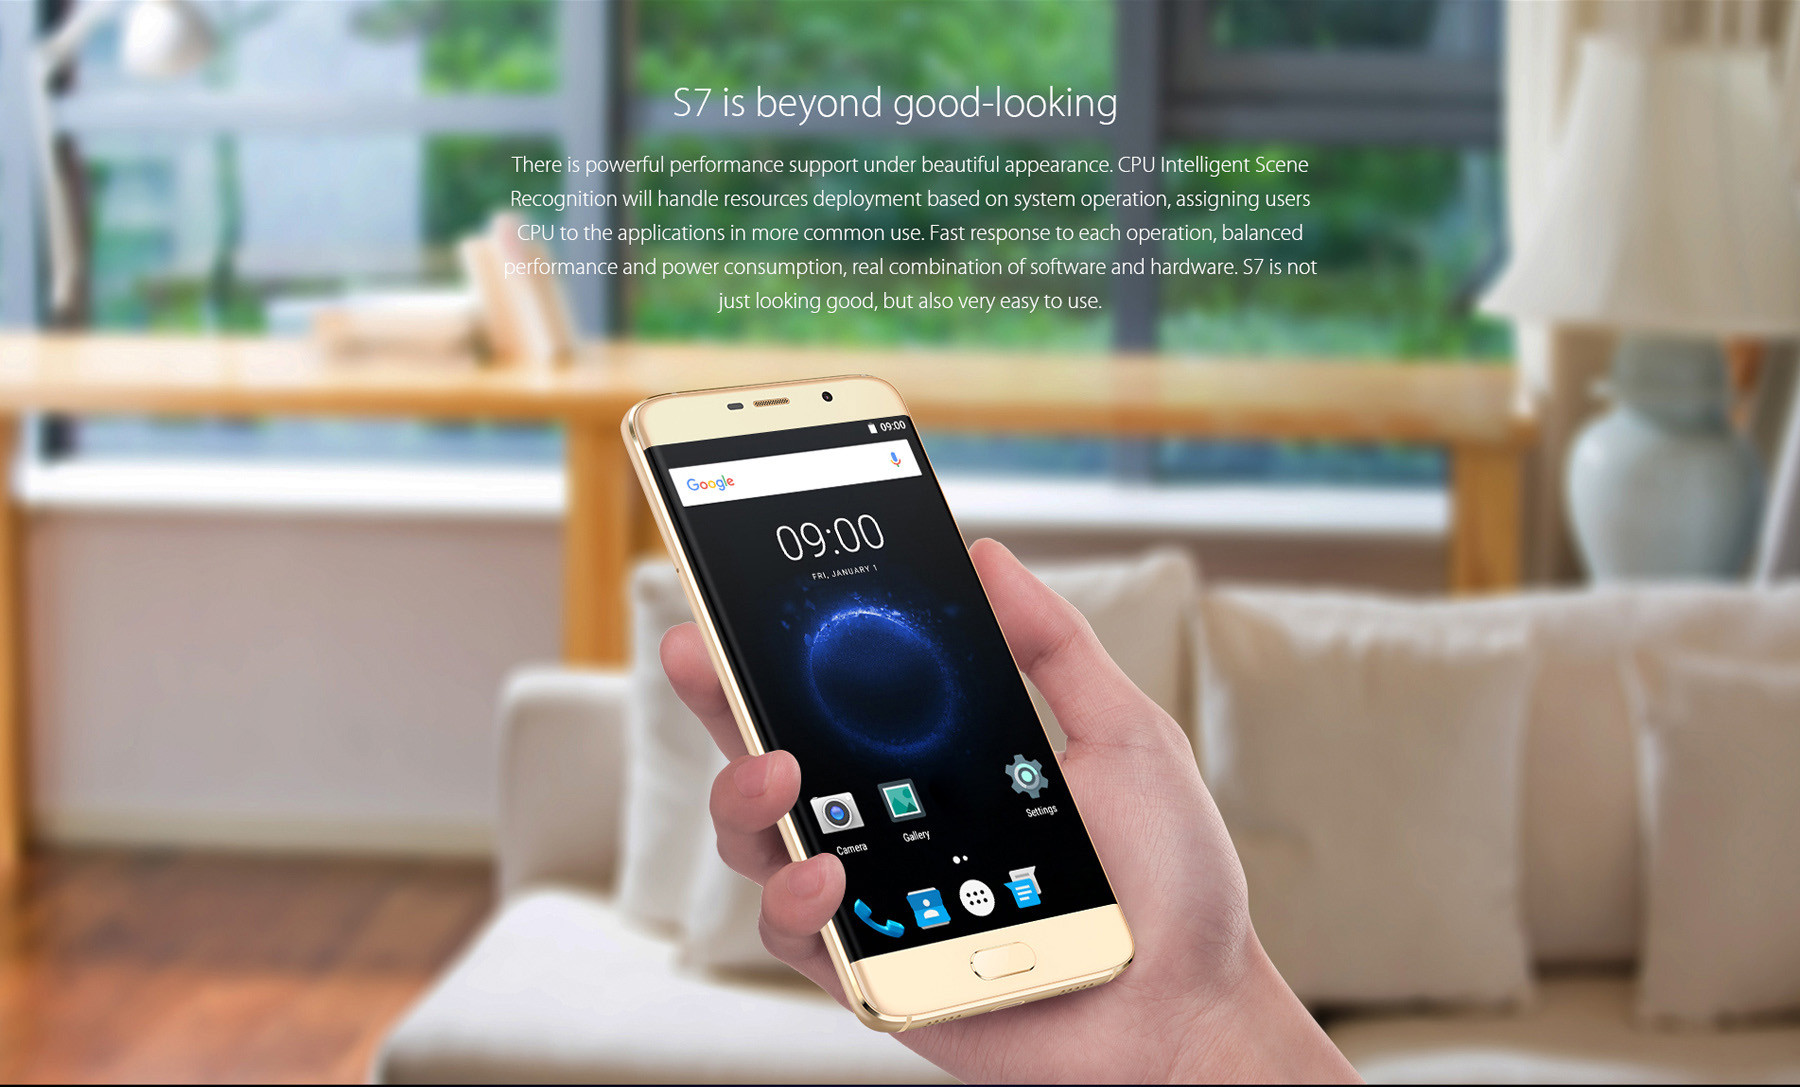 Elephone S7 5.5 inch 4G Phablet Android 6.0 Helio X20 Deca Core 2.0GHz FHD Screen 13.0MP + 5.0MP Cameras Fingerprint Sensor